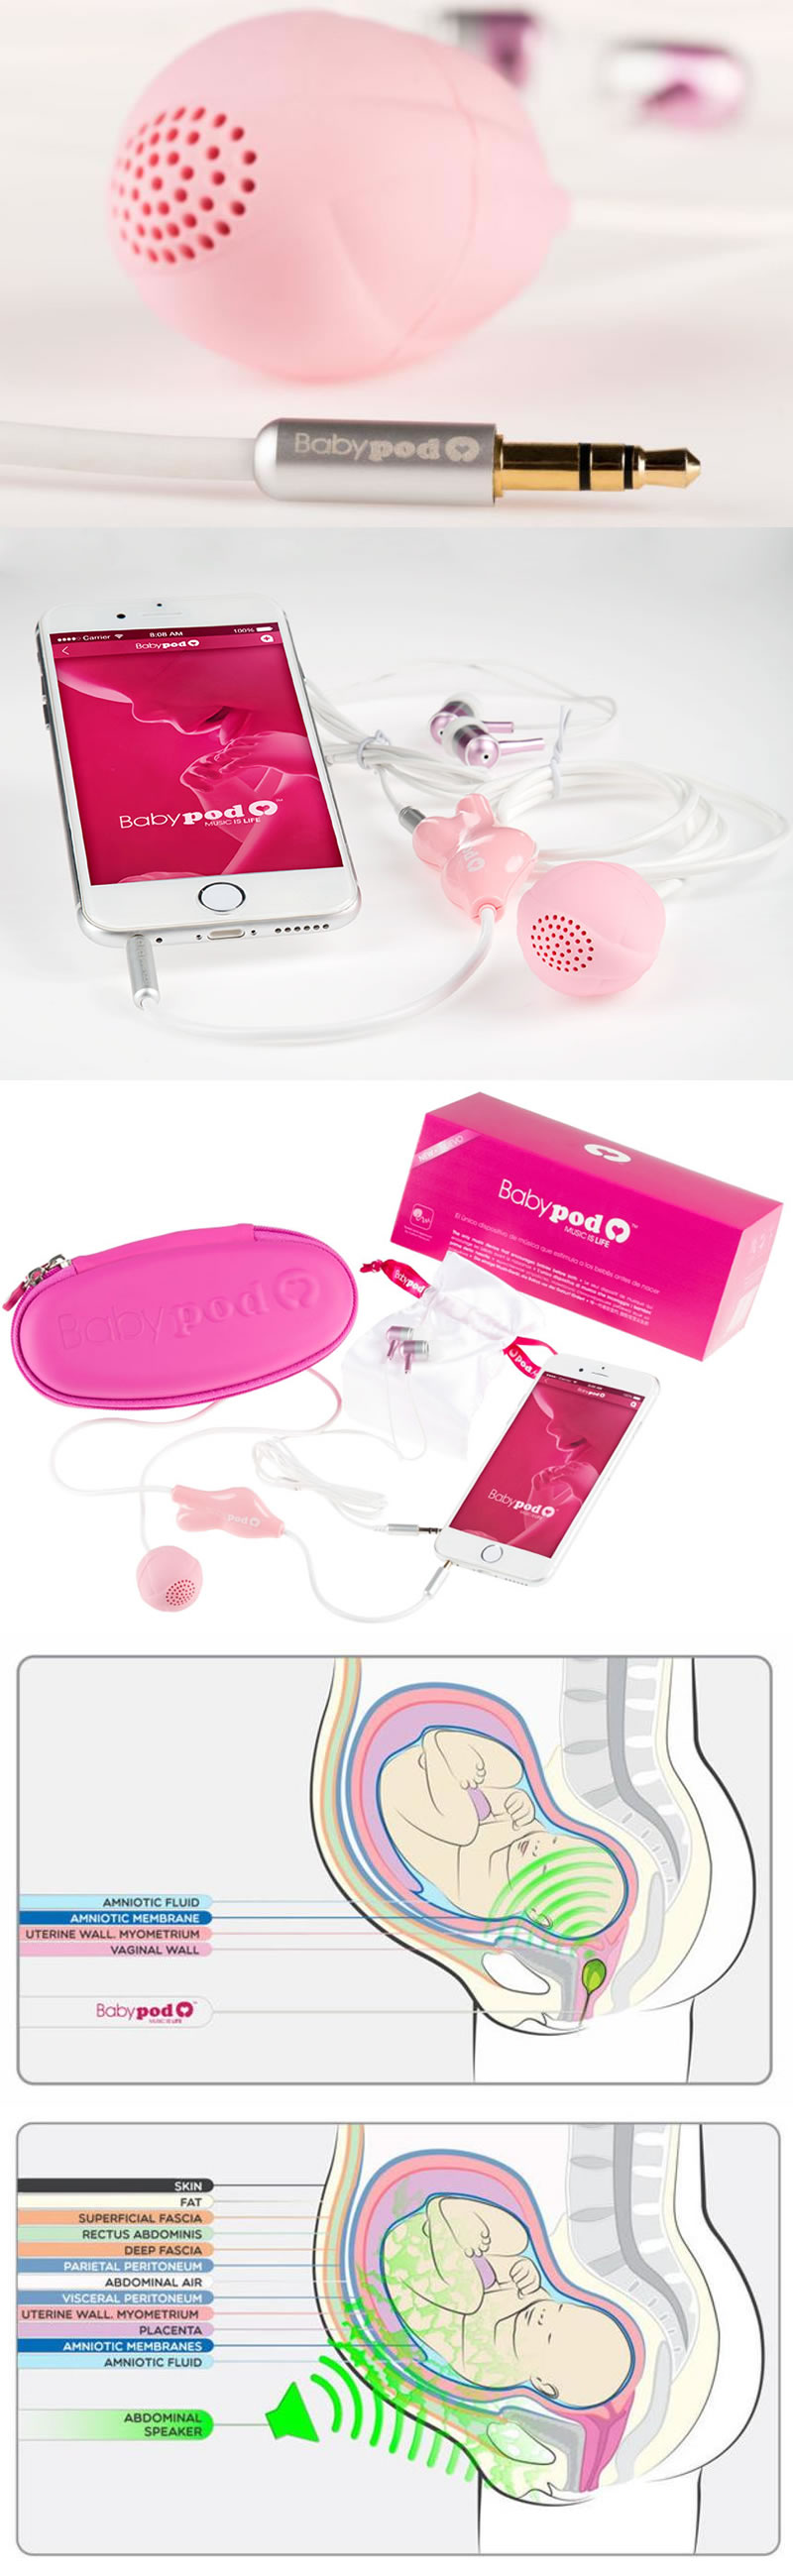 This is a musical tampon called Babypod